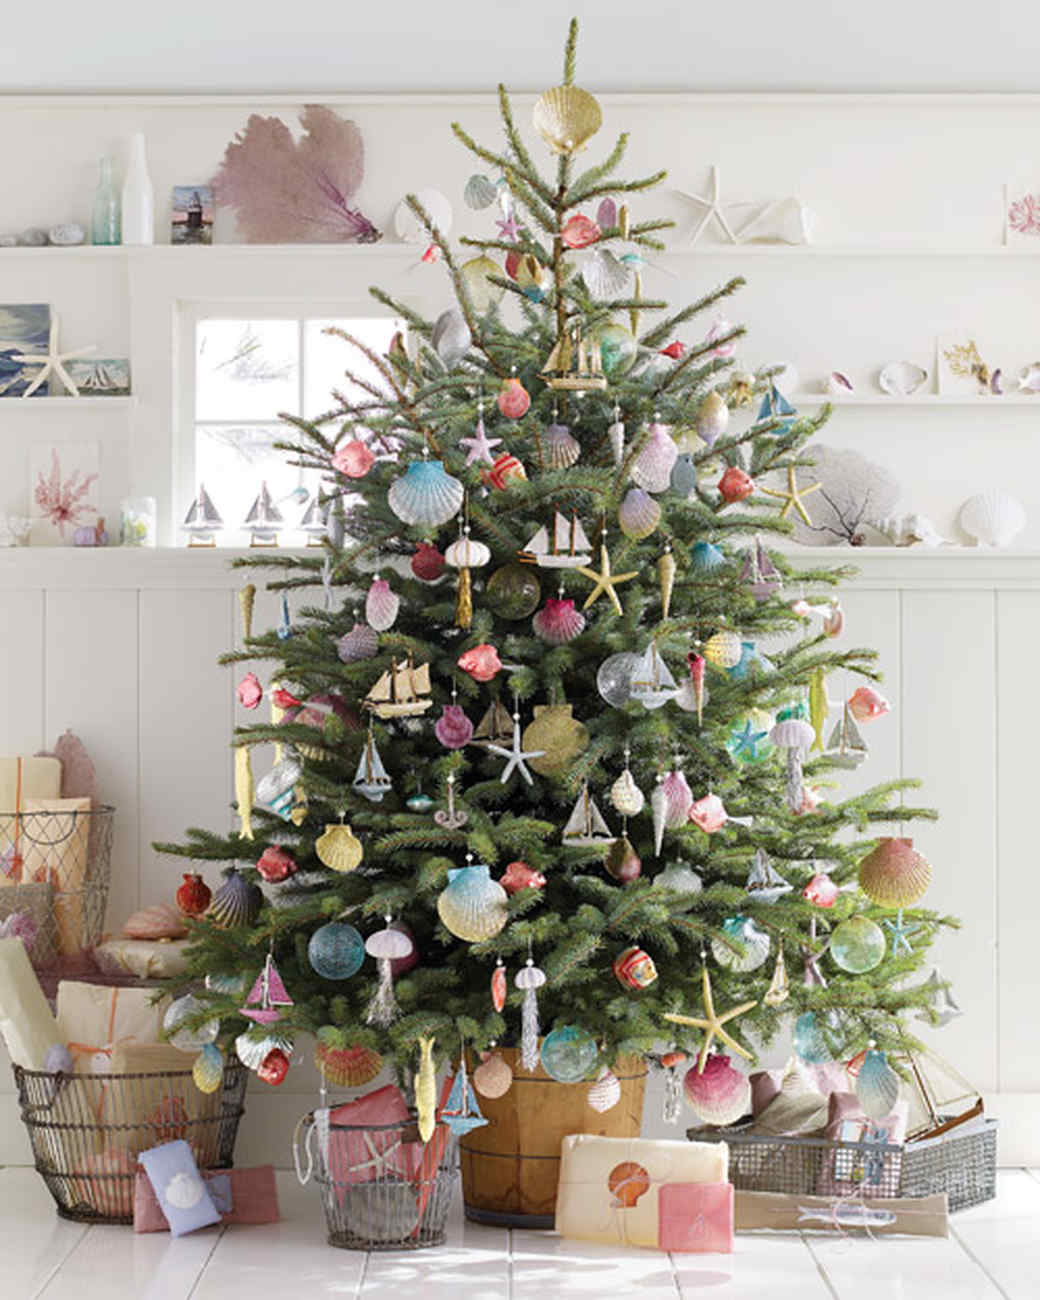 28 creative christmas tree decorating ideas martha stewart - Christmas Tree Branch Decorations